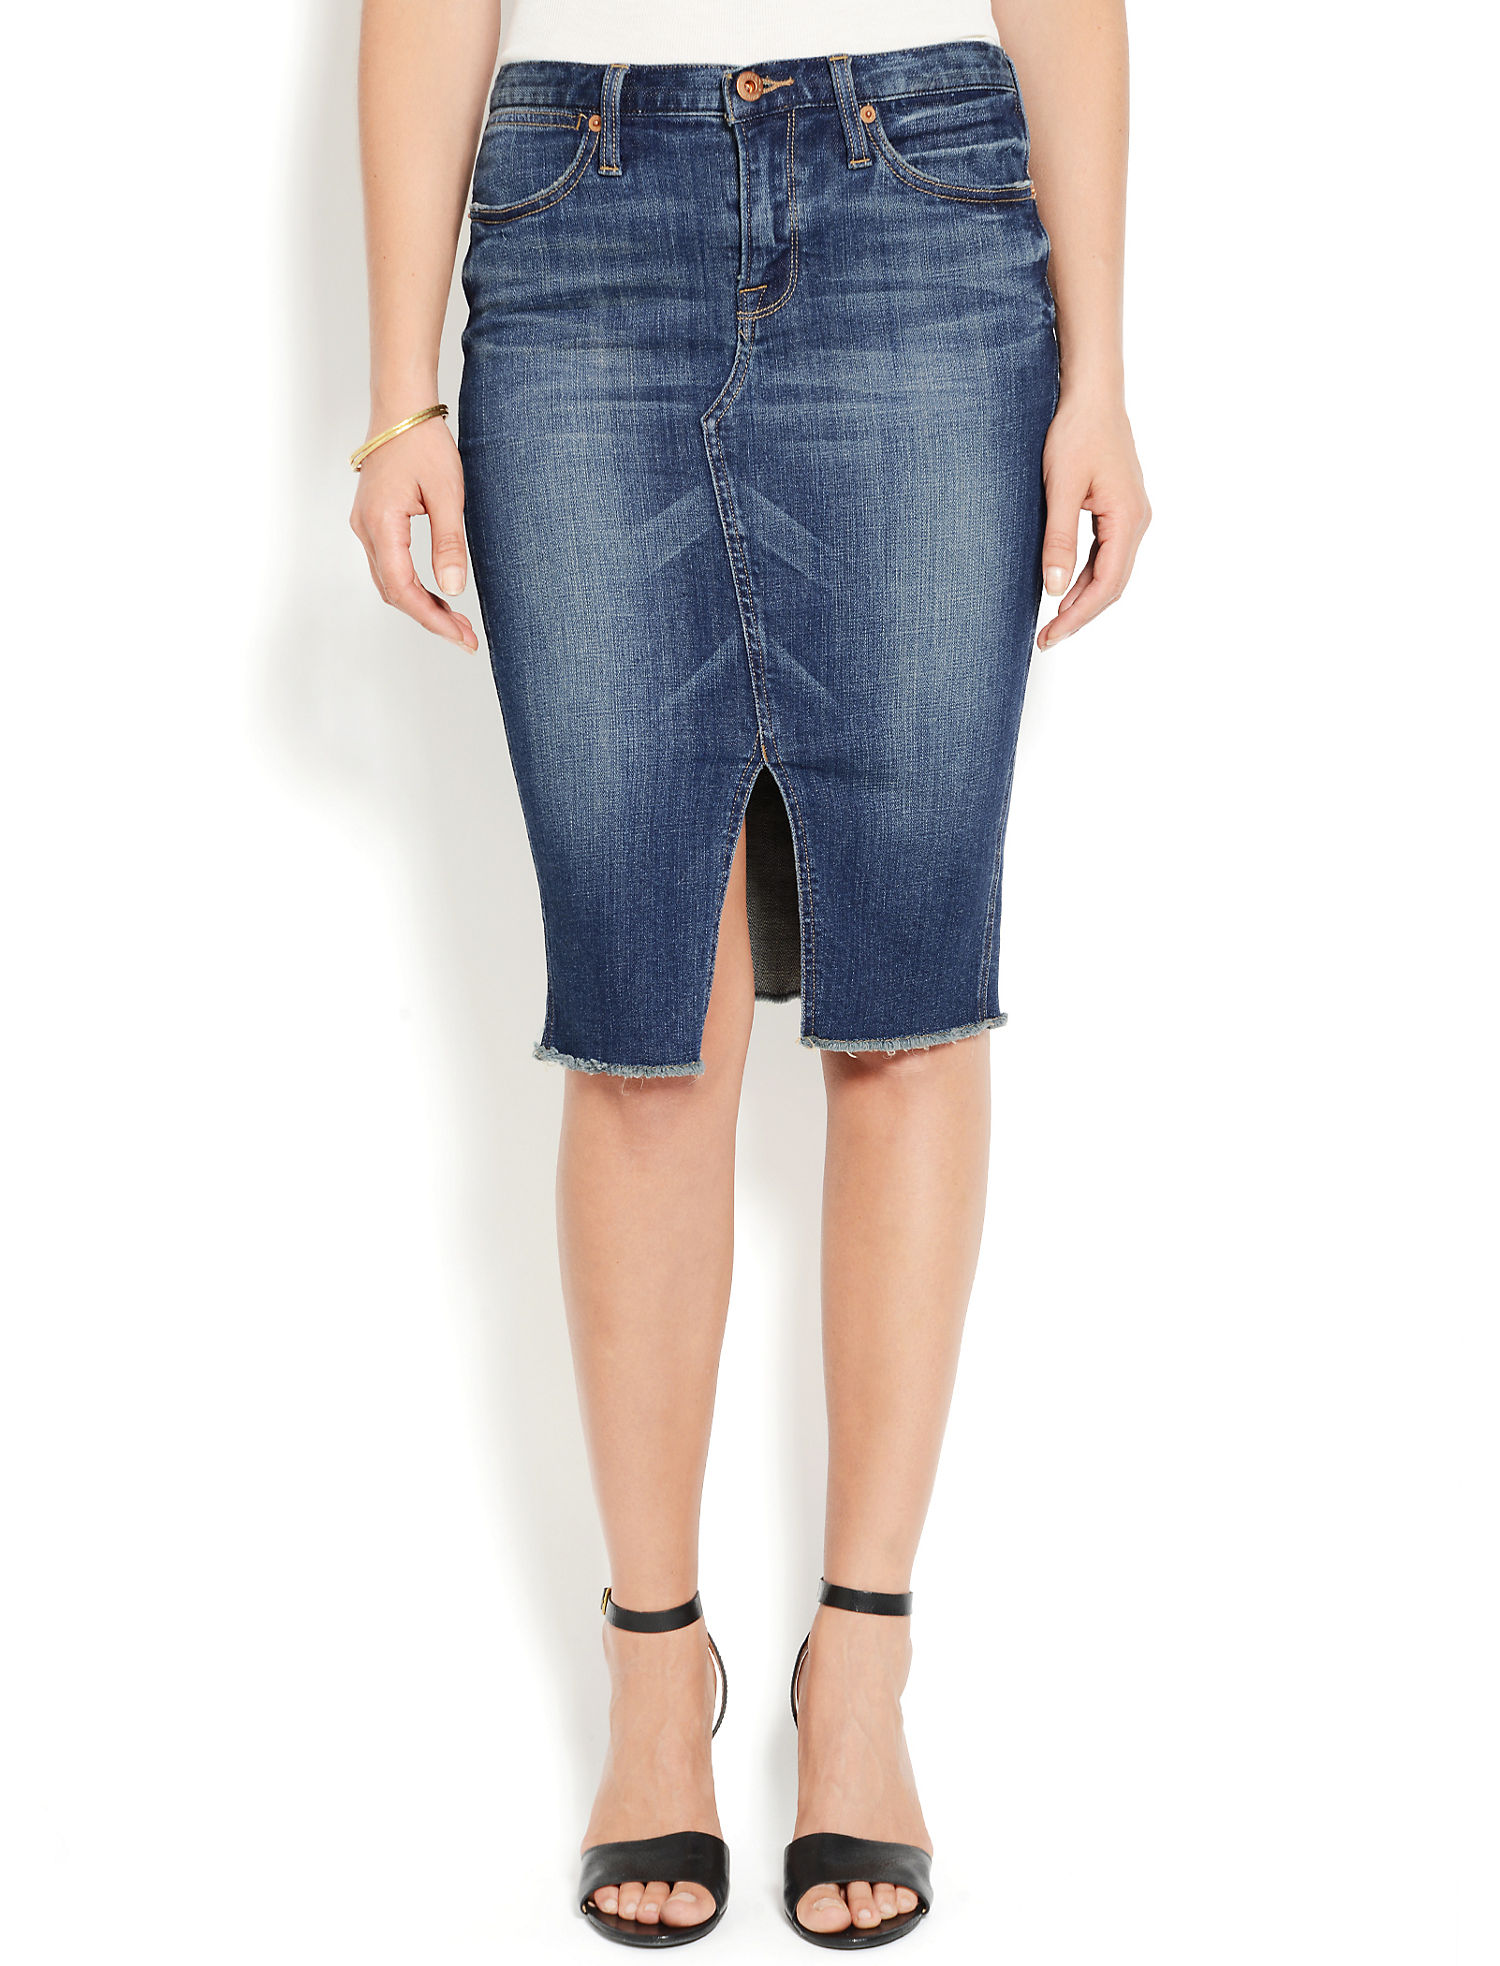 DENIM SLIT SKIRT - Lucky Brand 2.0